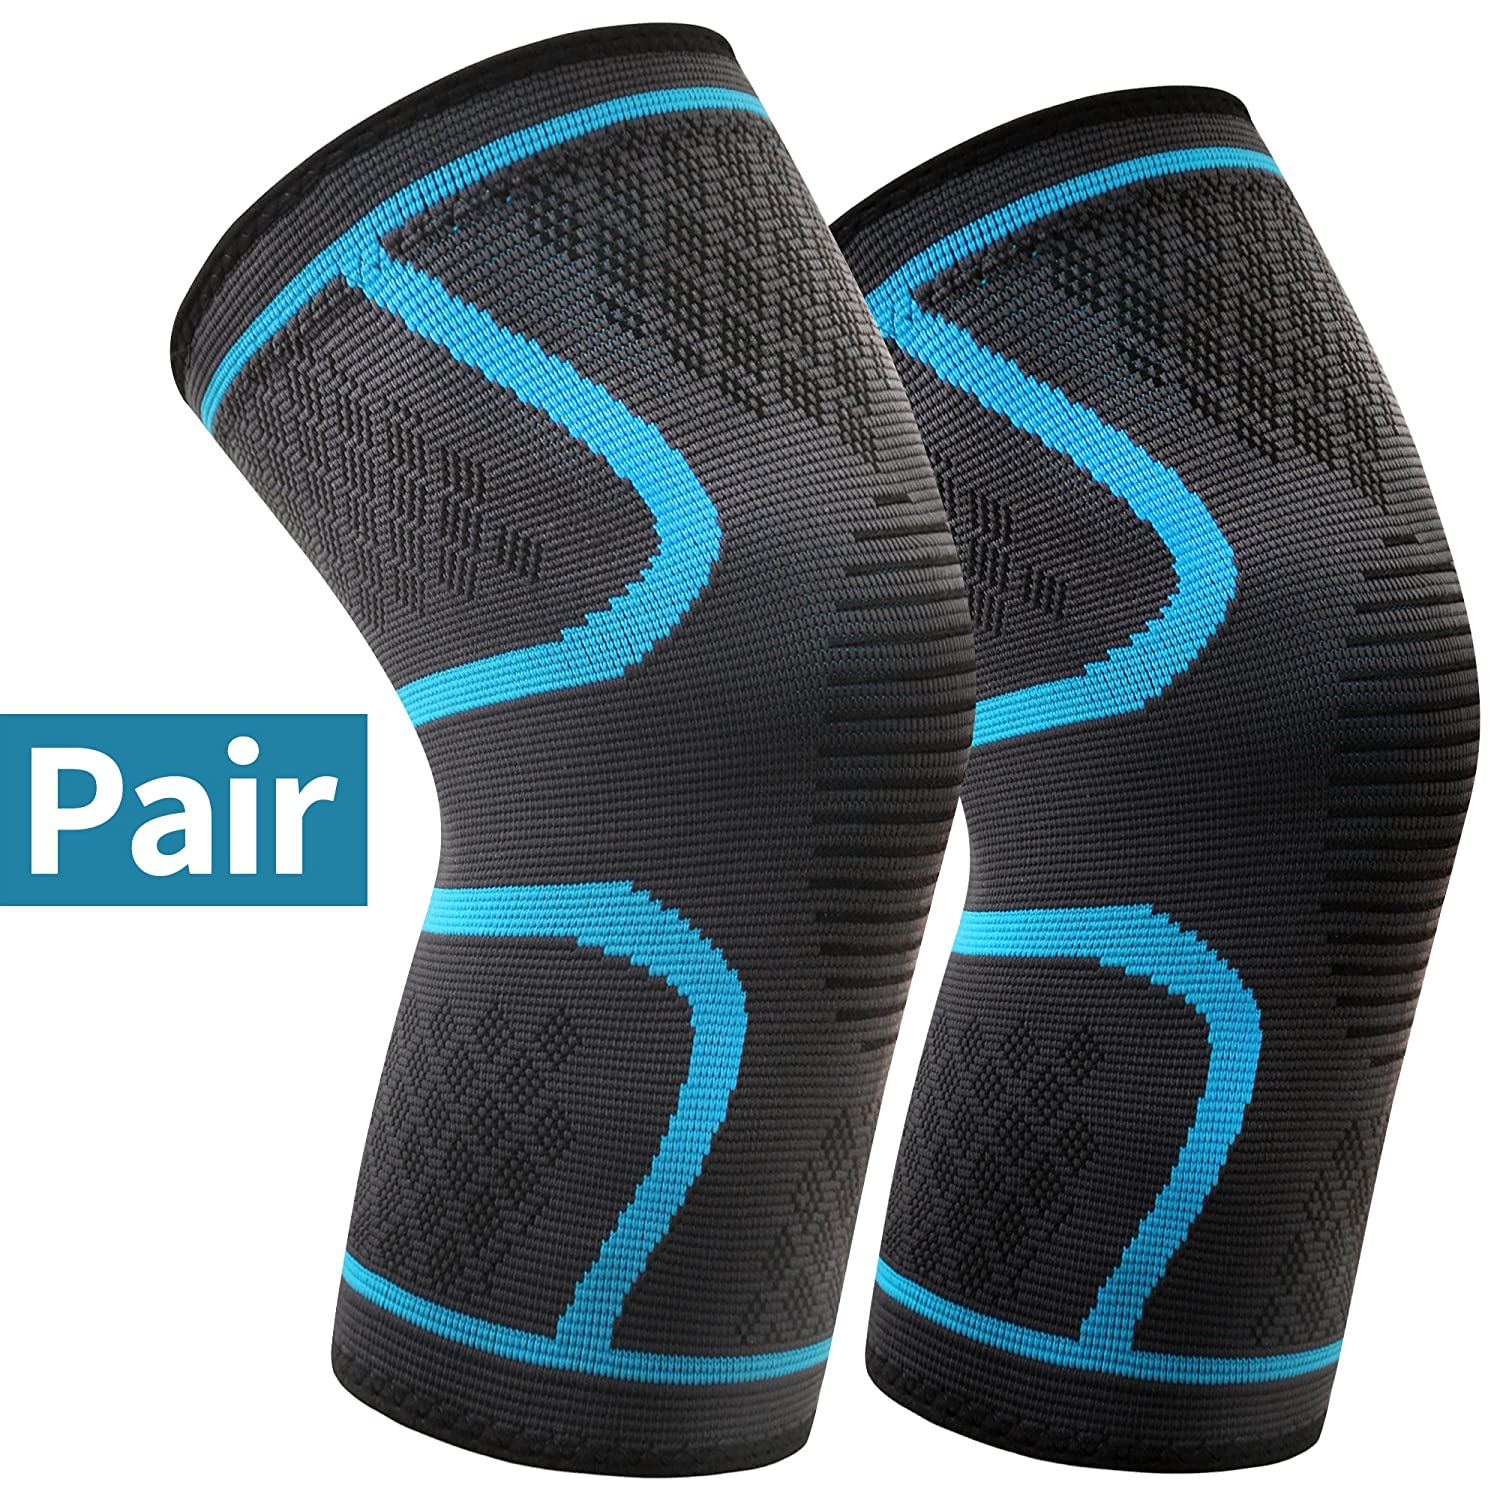 Knee Brace Support, Arteesol 2 Pack Anti Slip Knee Brace Compression Sleeves Super Elastic Breathable for Joint Pain, Arthritis, Ligament Injury, Sports Injury Rehabilitation, Protection against Reinjury